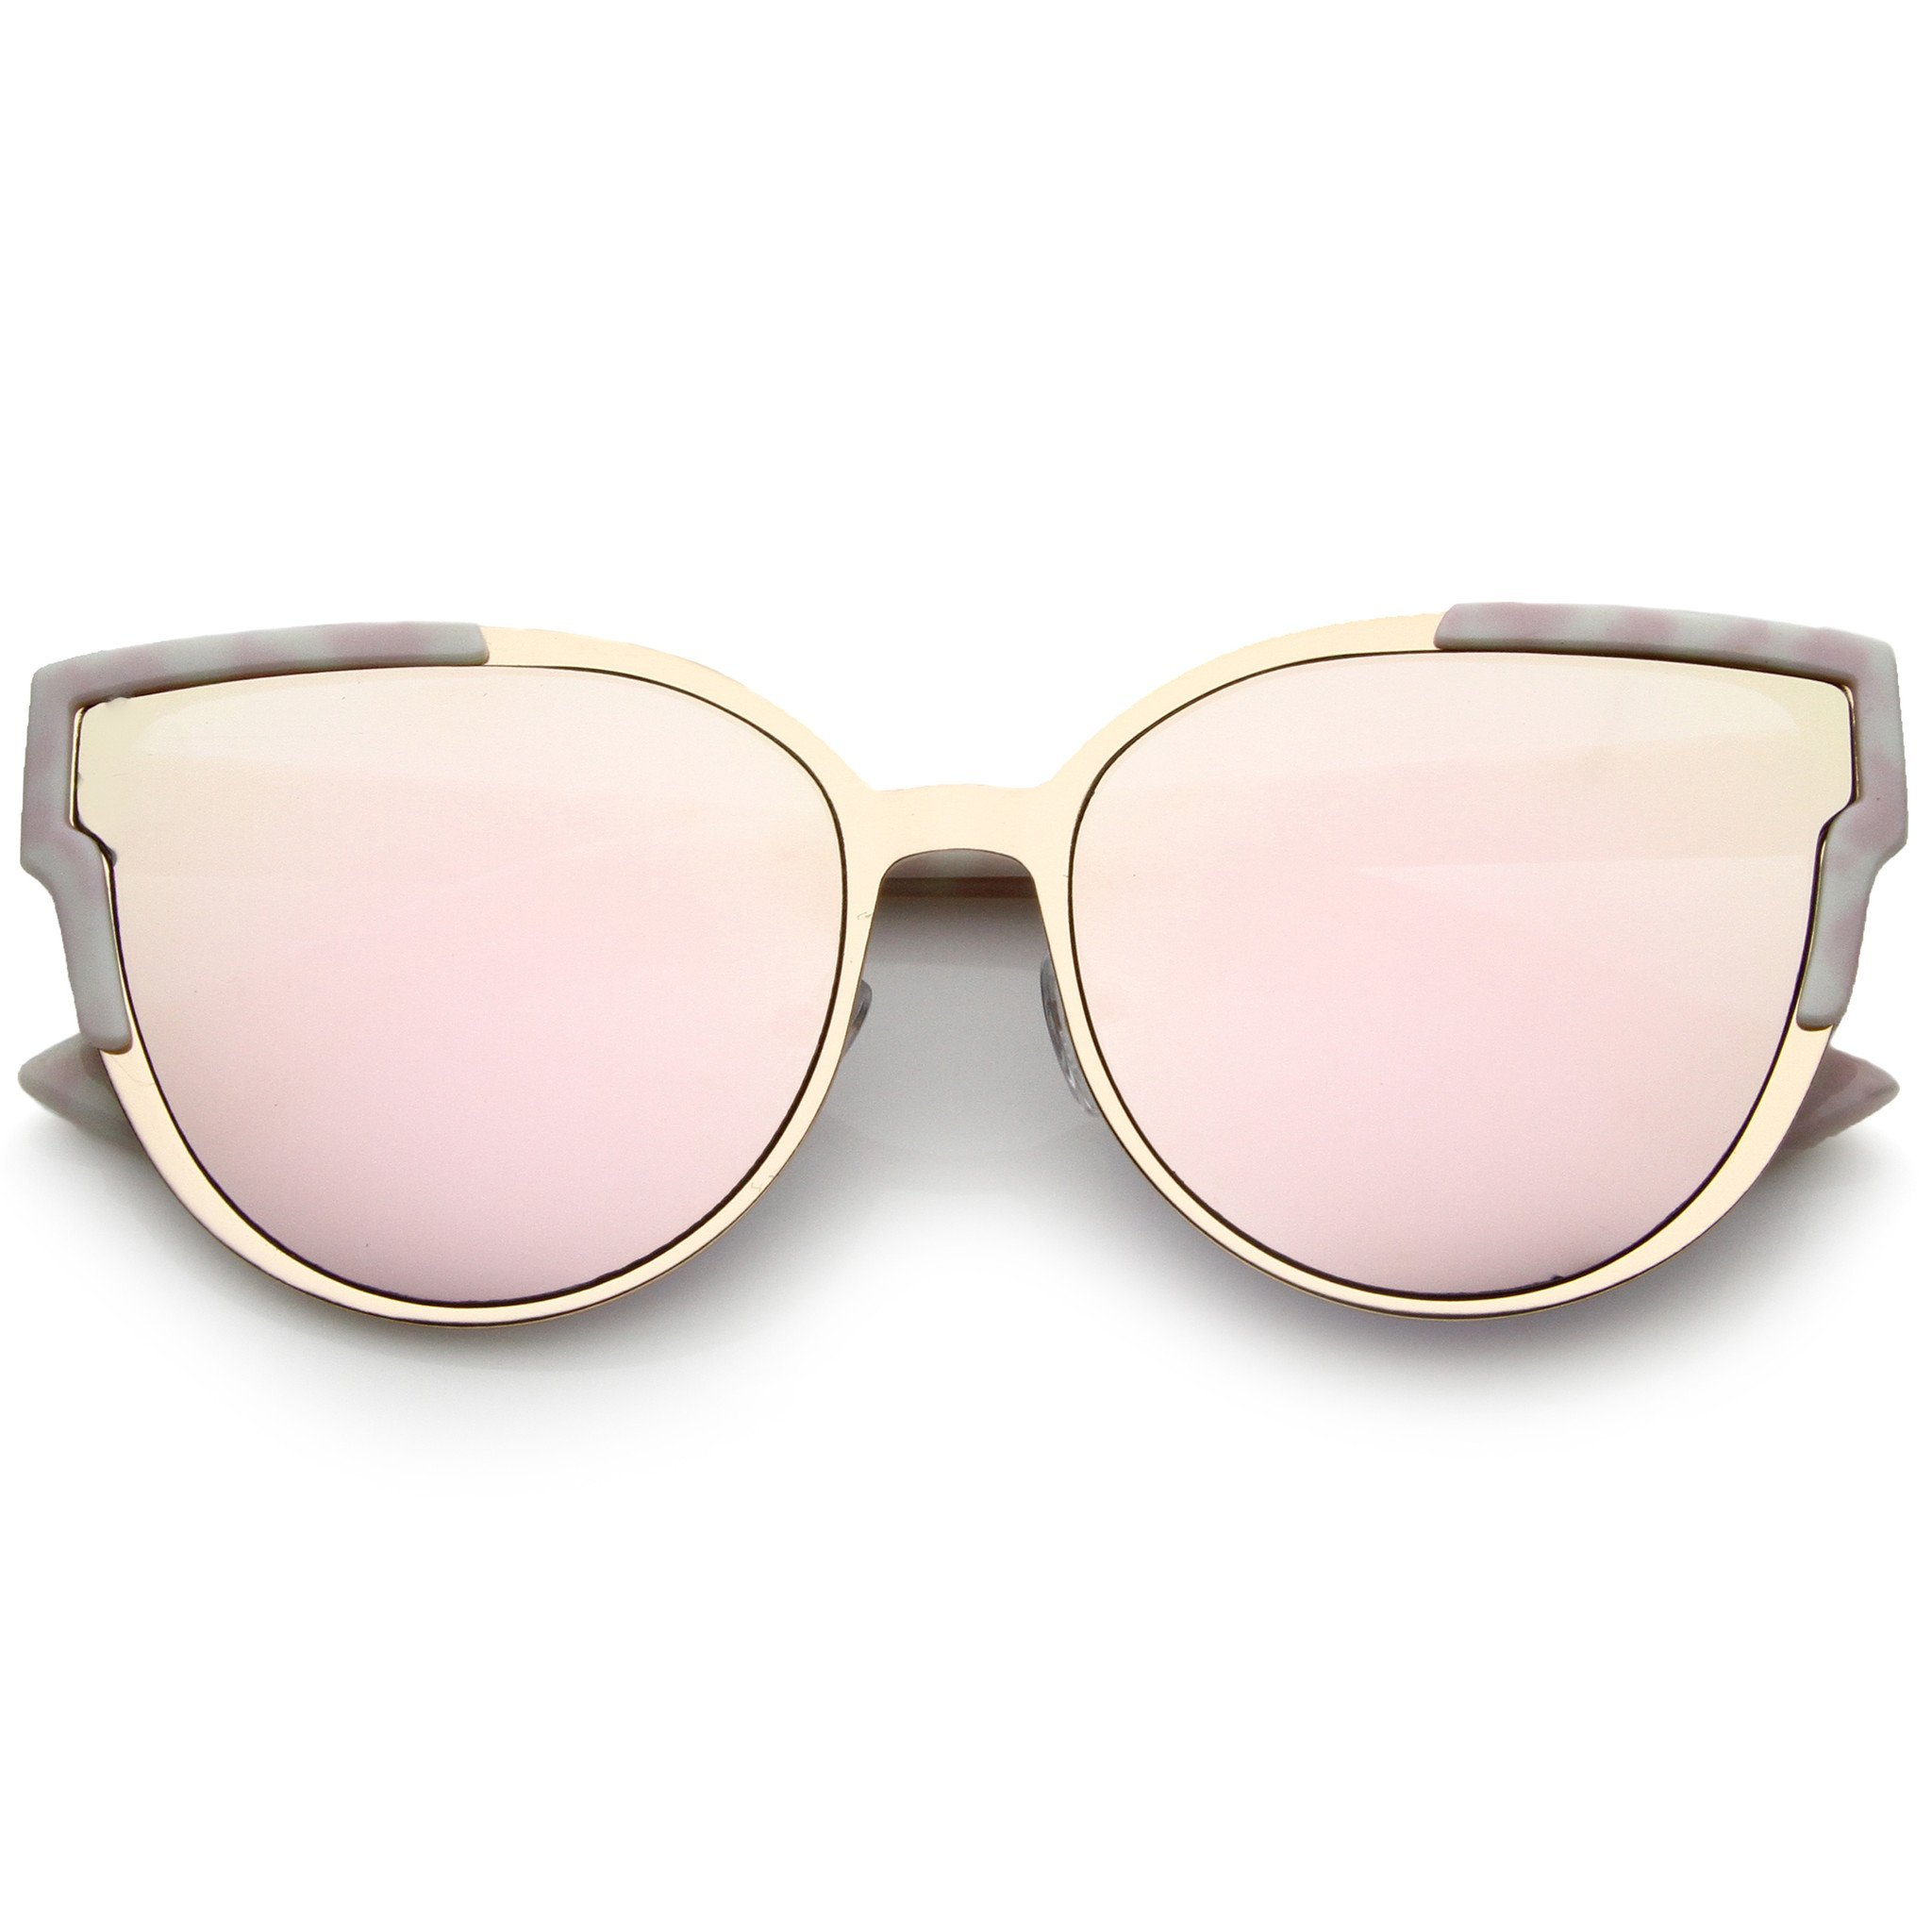 Image of Women's Infinity Mirrored Flat Lens Marble Print Sunglasses A821